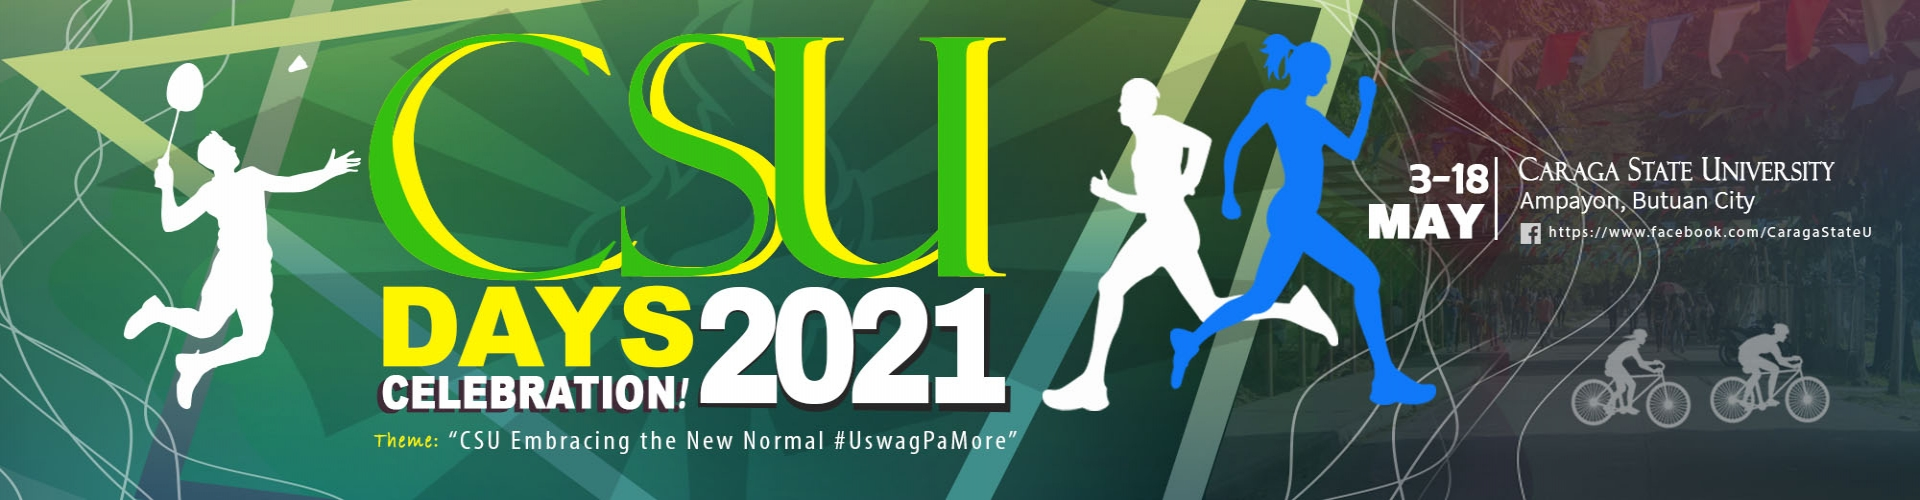 CSU Days Celebration 2021